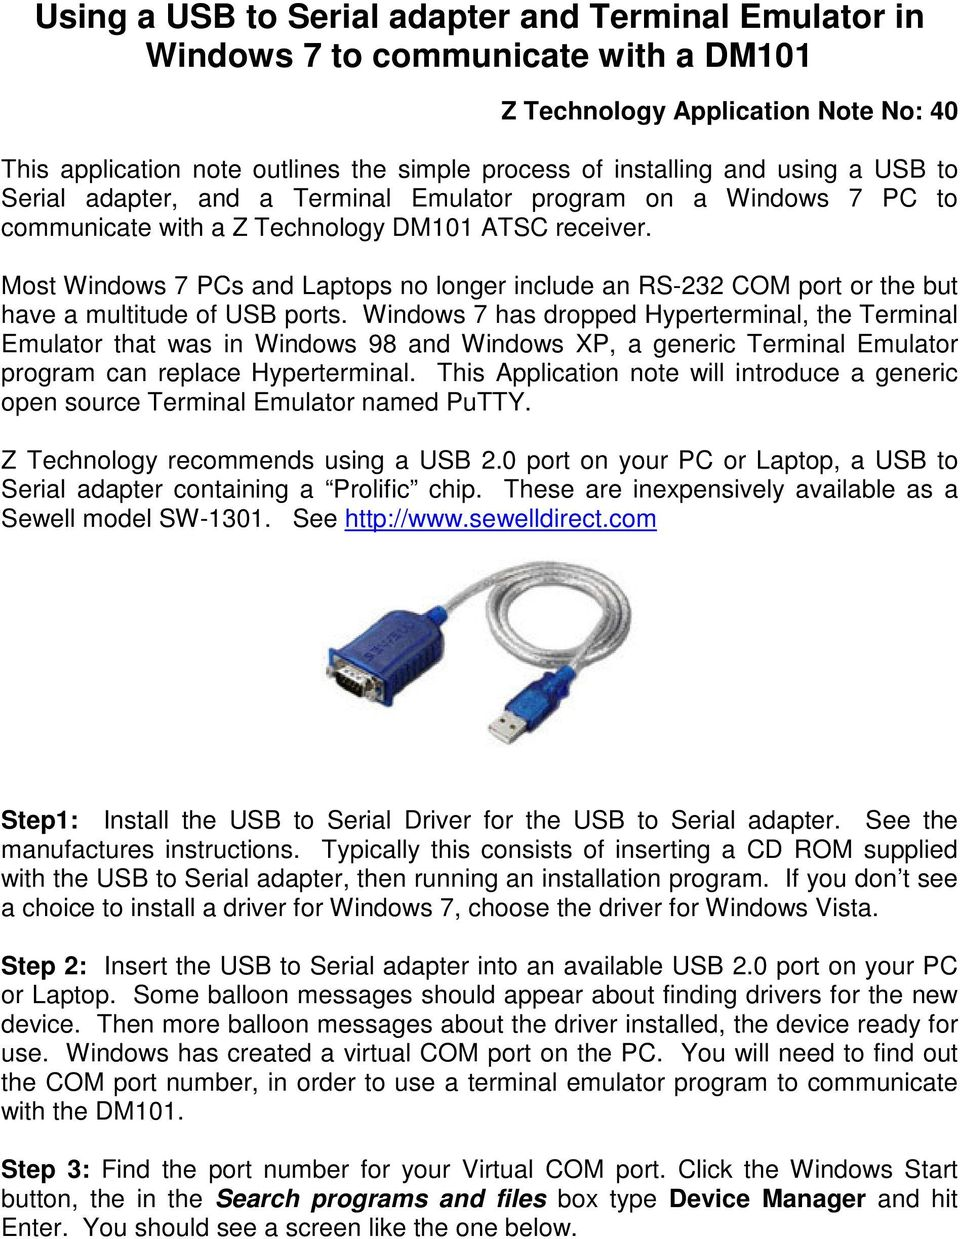 Using a USB to Serial adapter and Terminal Emulator in